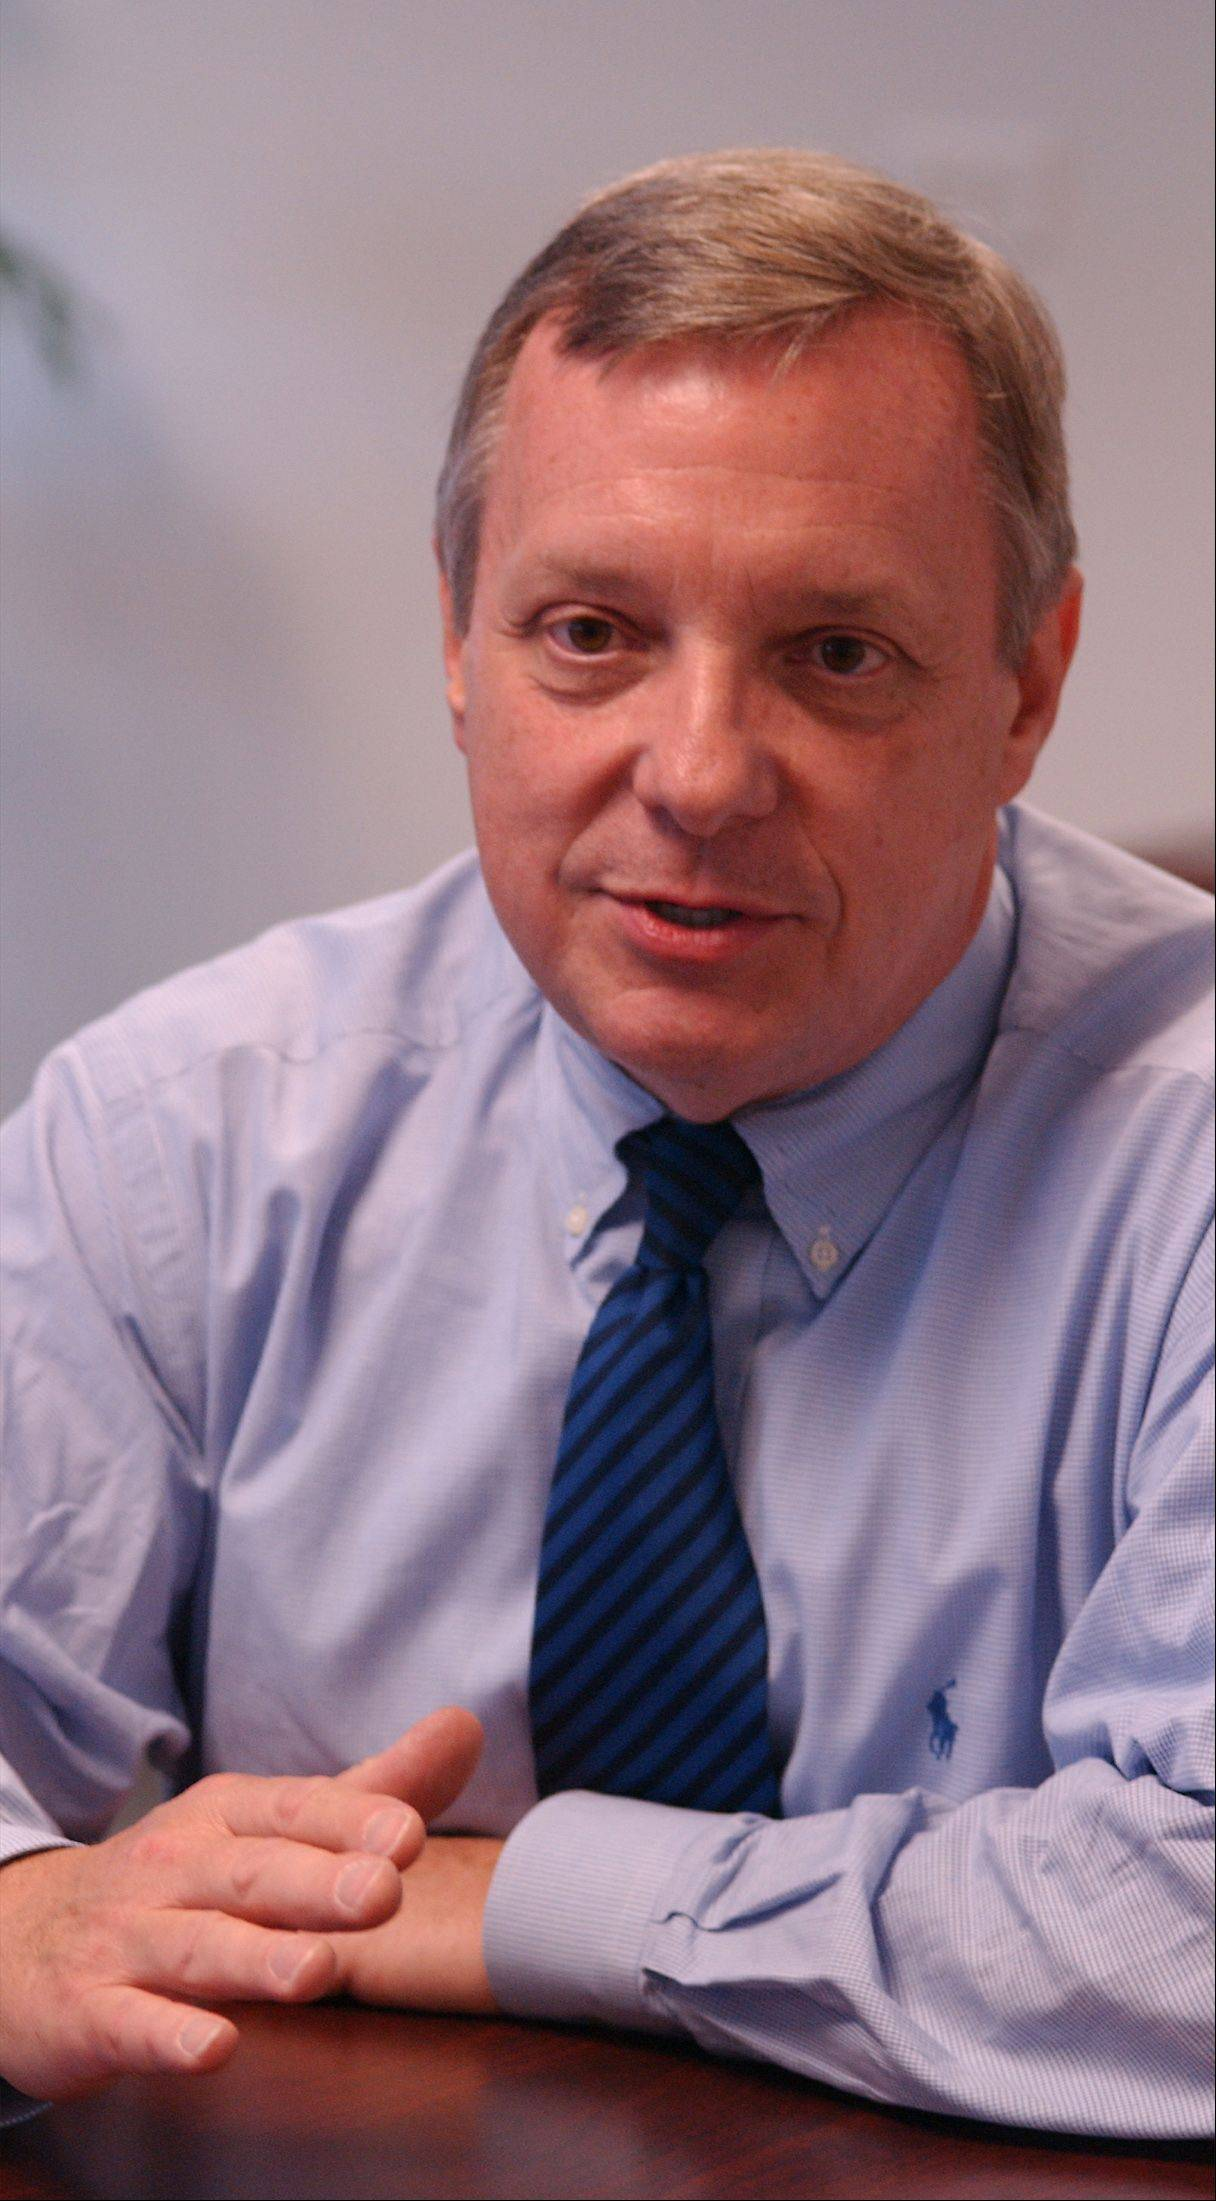 Illinois Sen. Dick Durbin is pushing a Senate immigration plan that would dramatically increase the number of high-skilled foreign workers allowed into the country and give permanent legal status to an unlimited number of students who earn graduate degrees from U.S. universities in science, technology, engineering or math, according to people familiar with the negotiations.